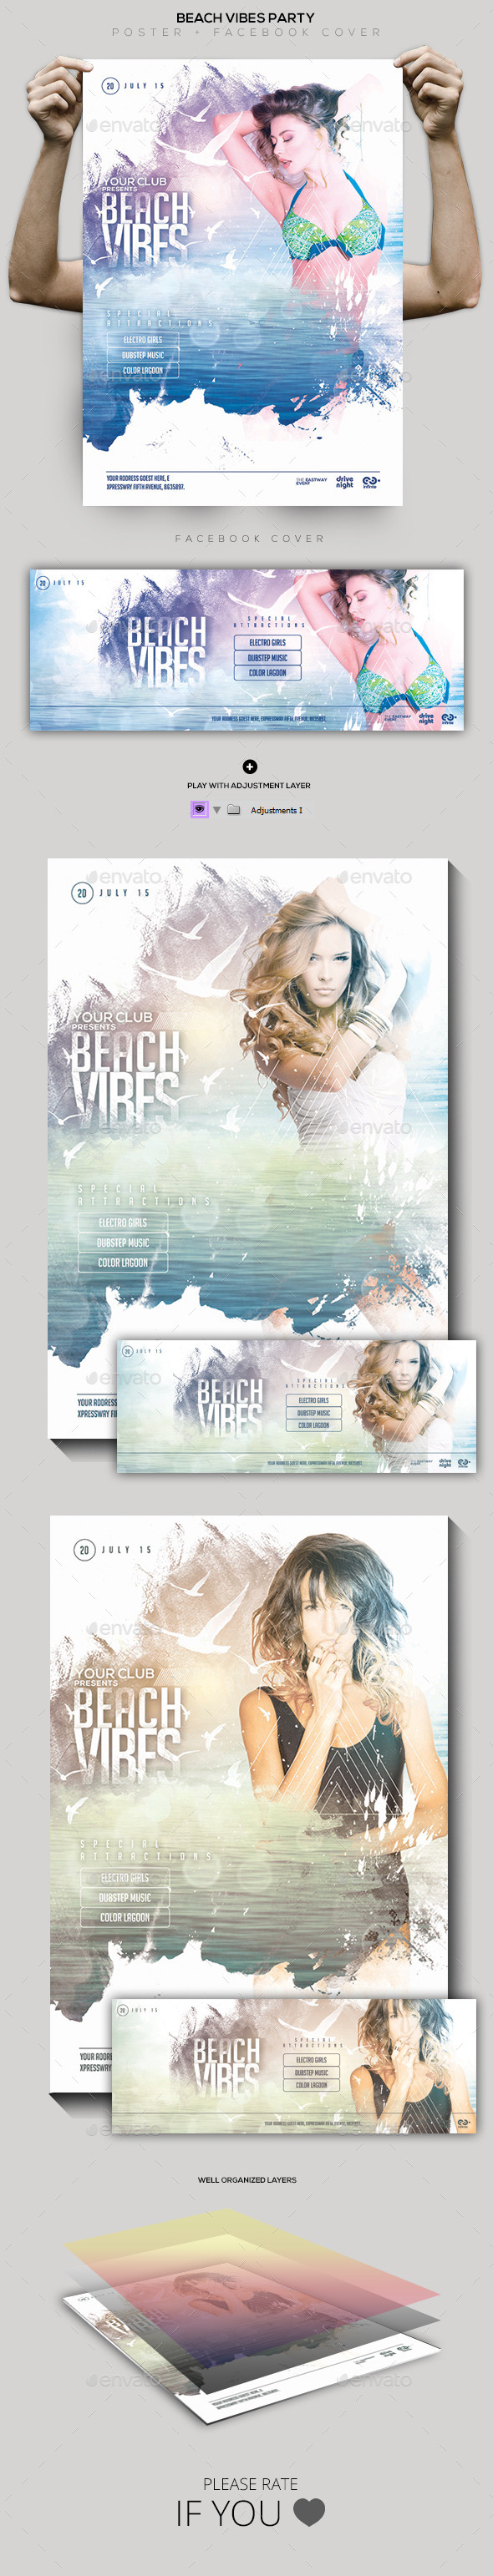 Beach Vibes Flyer / Poster / Facebook Cover - Clubs & Parties Events